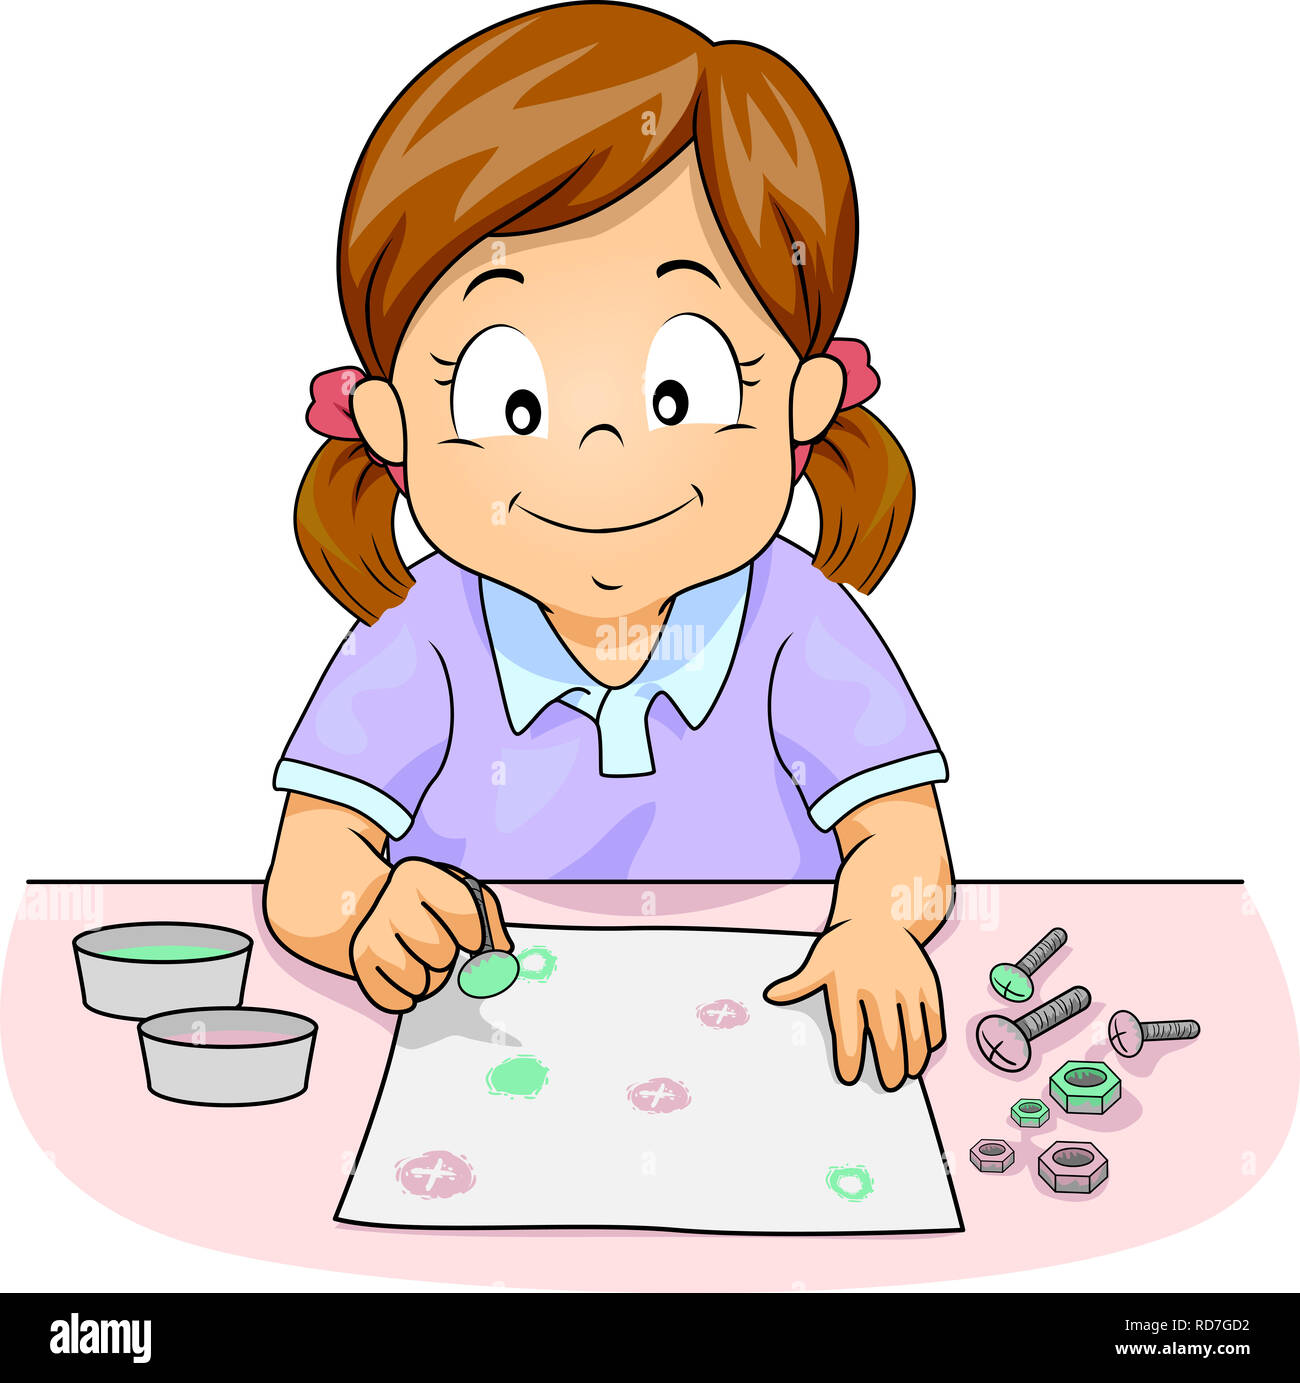 Illustration Of A Kid Girl Painting On Paper Using Bolt And Screw Stock Photo Alamy